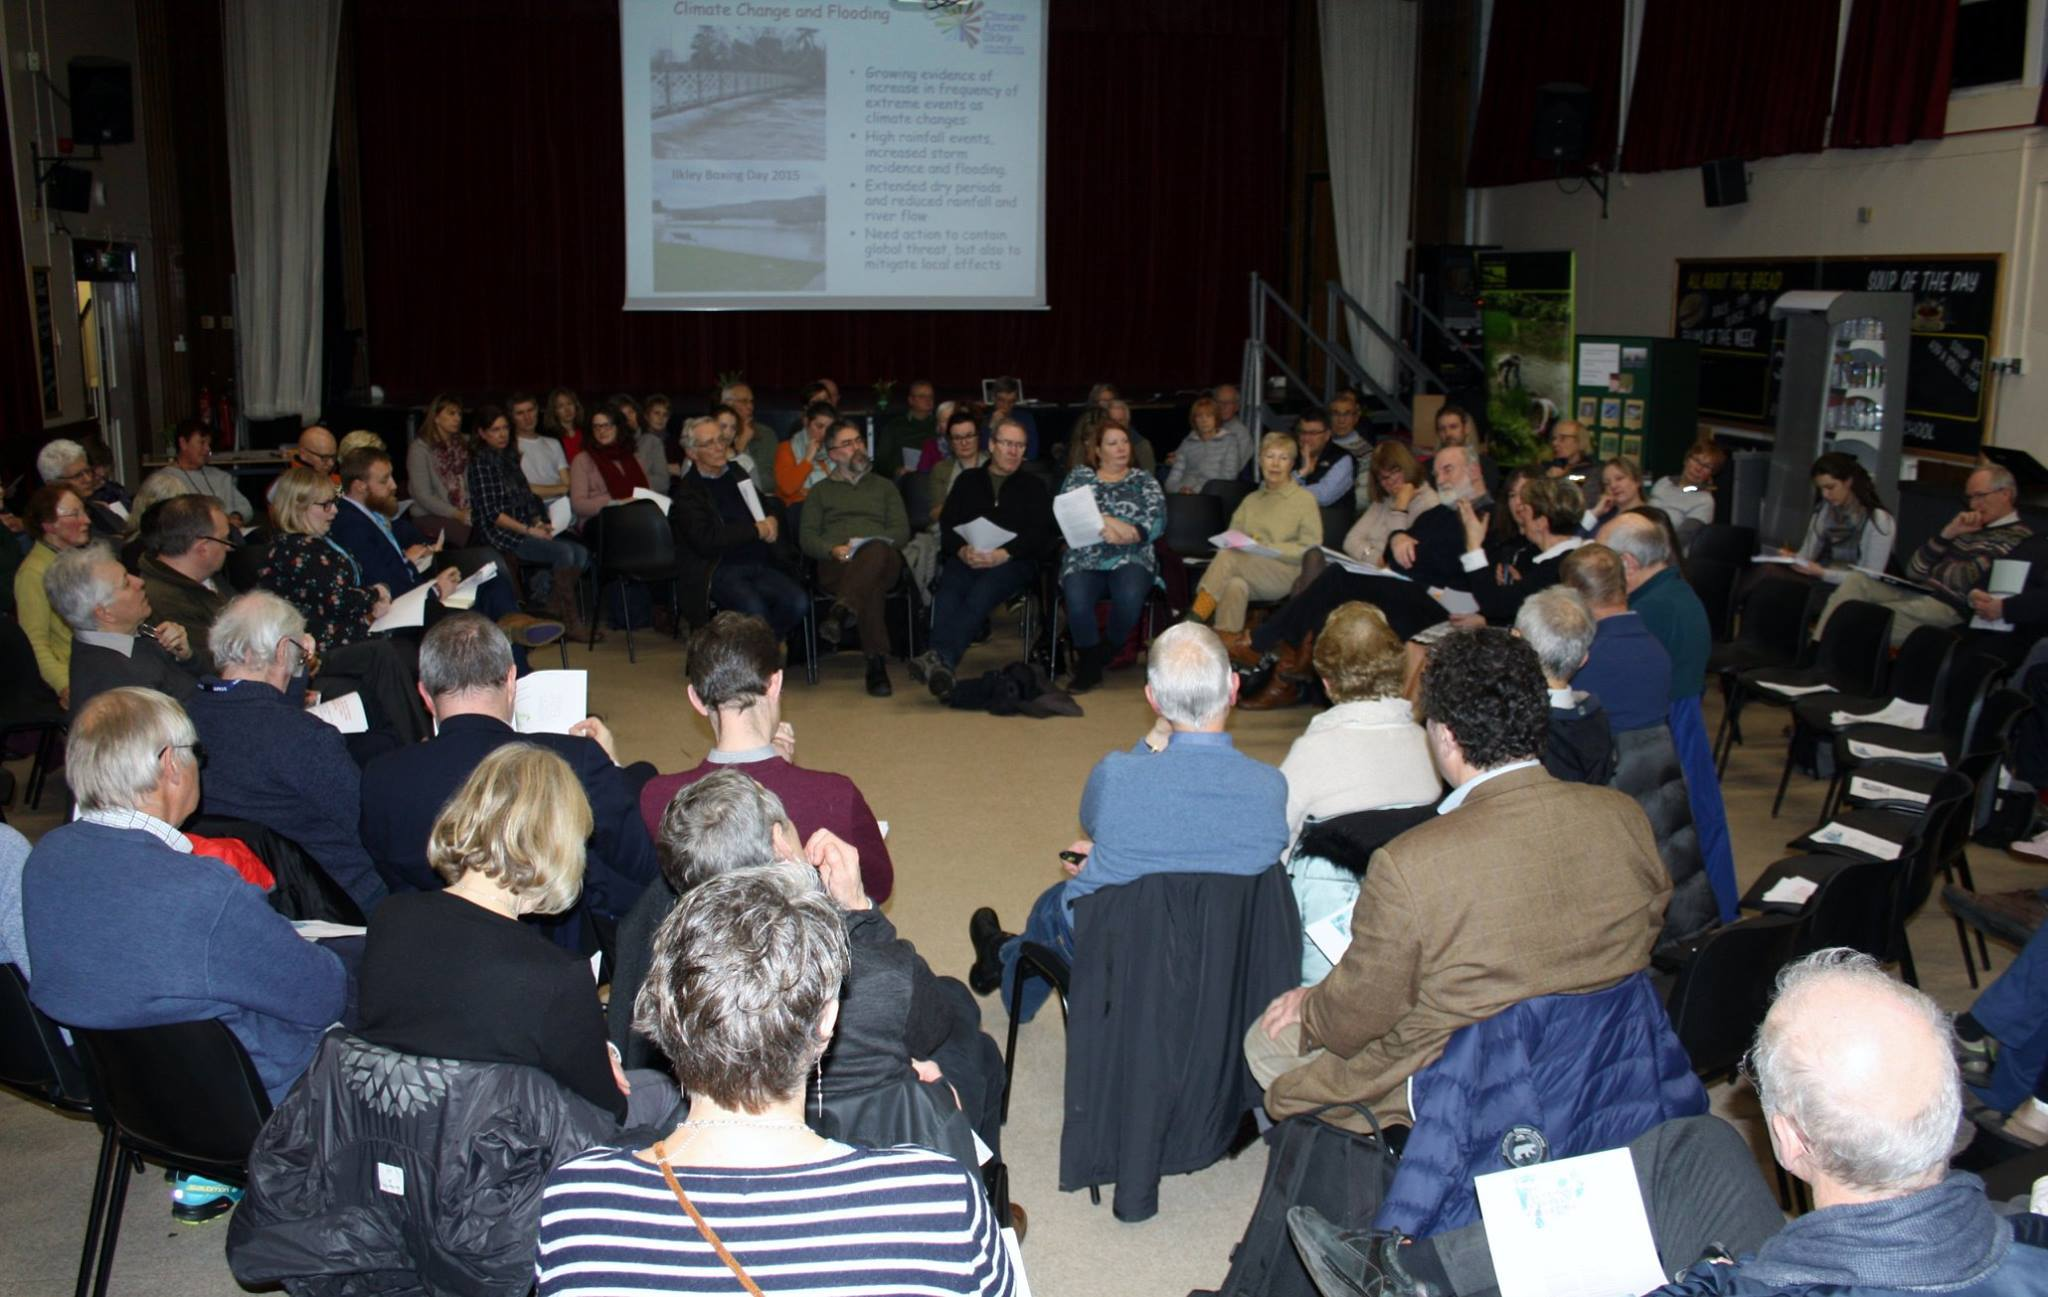 The Ilkley Town meeting: The Solution is less Pollution, Protecting the Wharfe and Ilkley environment, held at Ilkley Grammar School